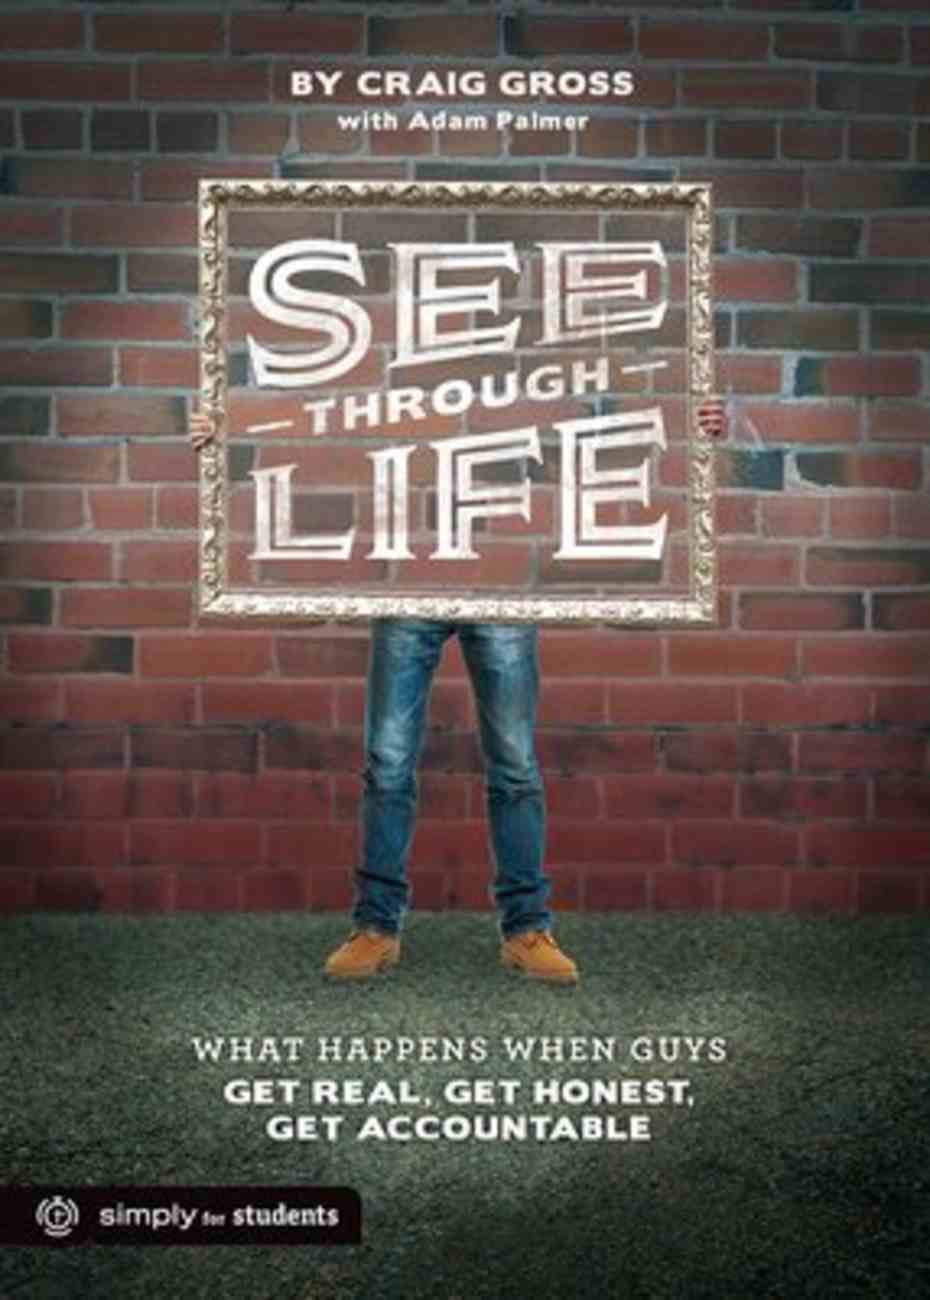 See-Through Life: What Happens When Guys Get Real, Get Honest, Get Accountable (Guys Book) Paperback